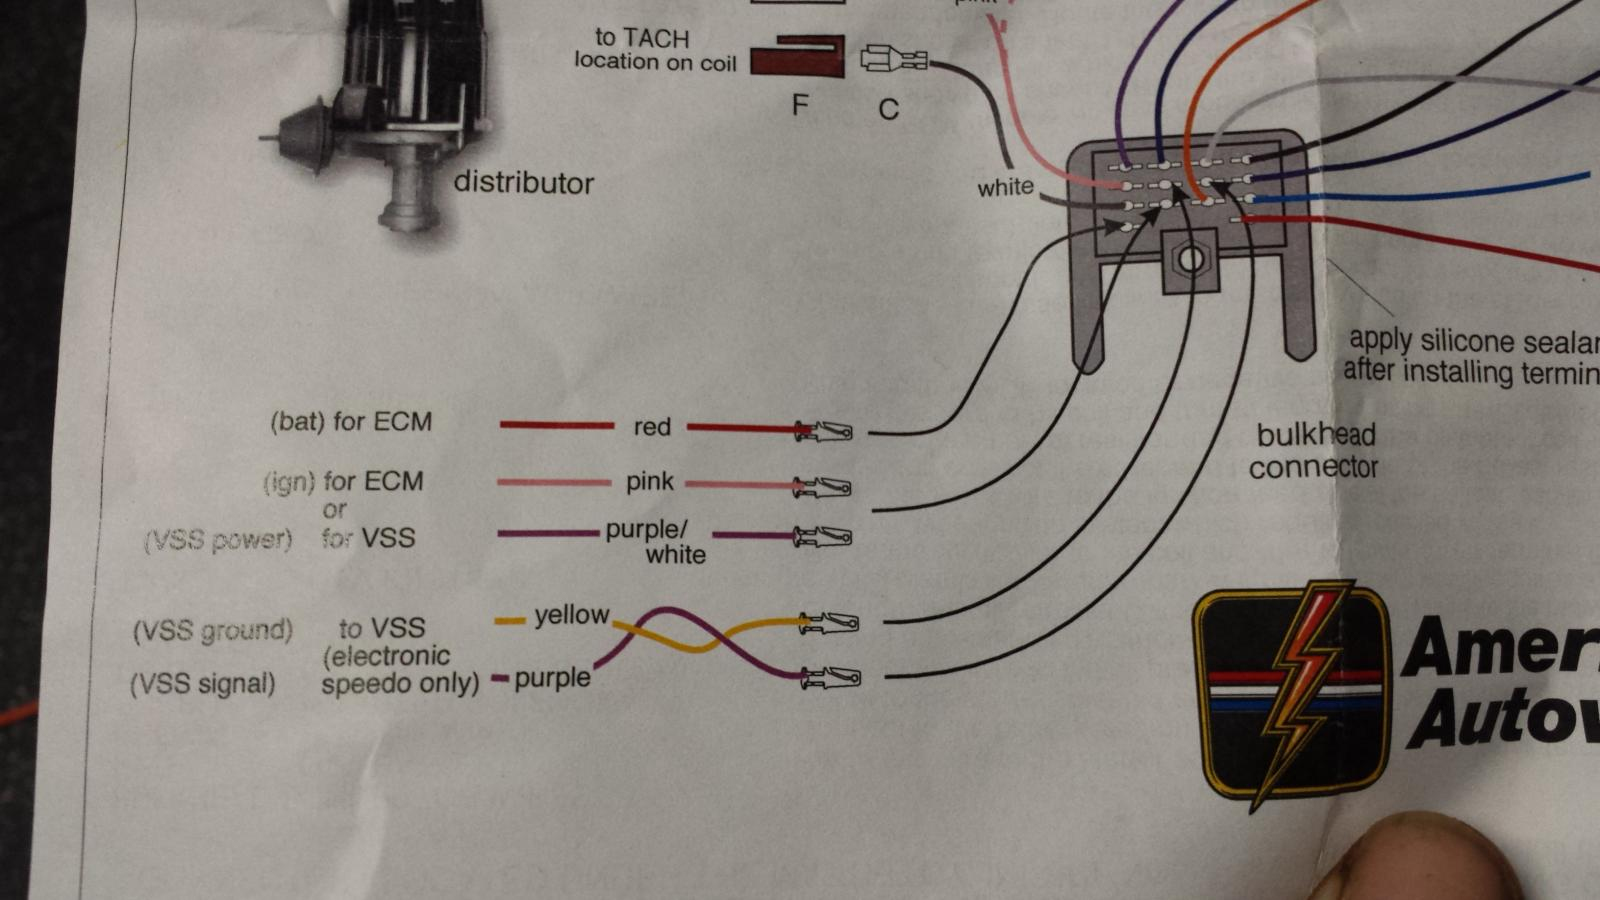 Stand Alone Pcm America Auto Wire Vss Diagram Attached Images